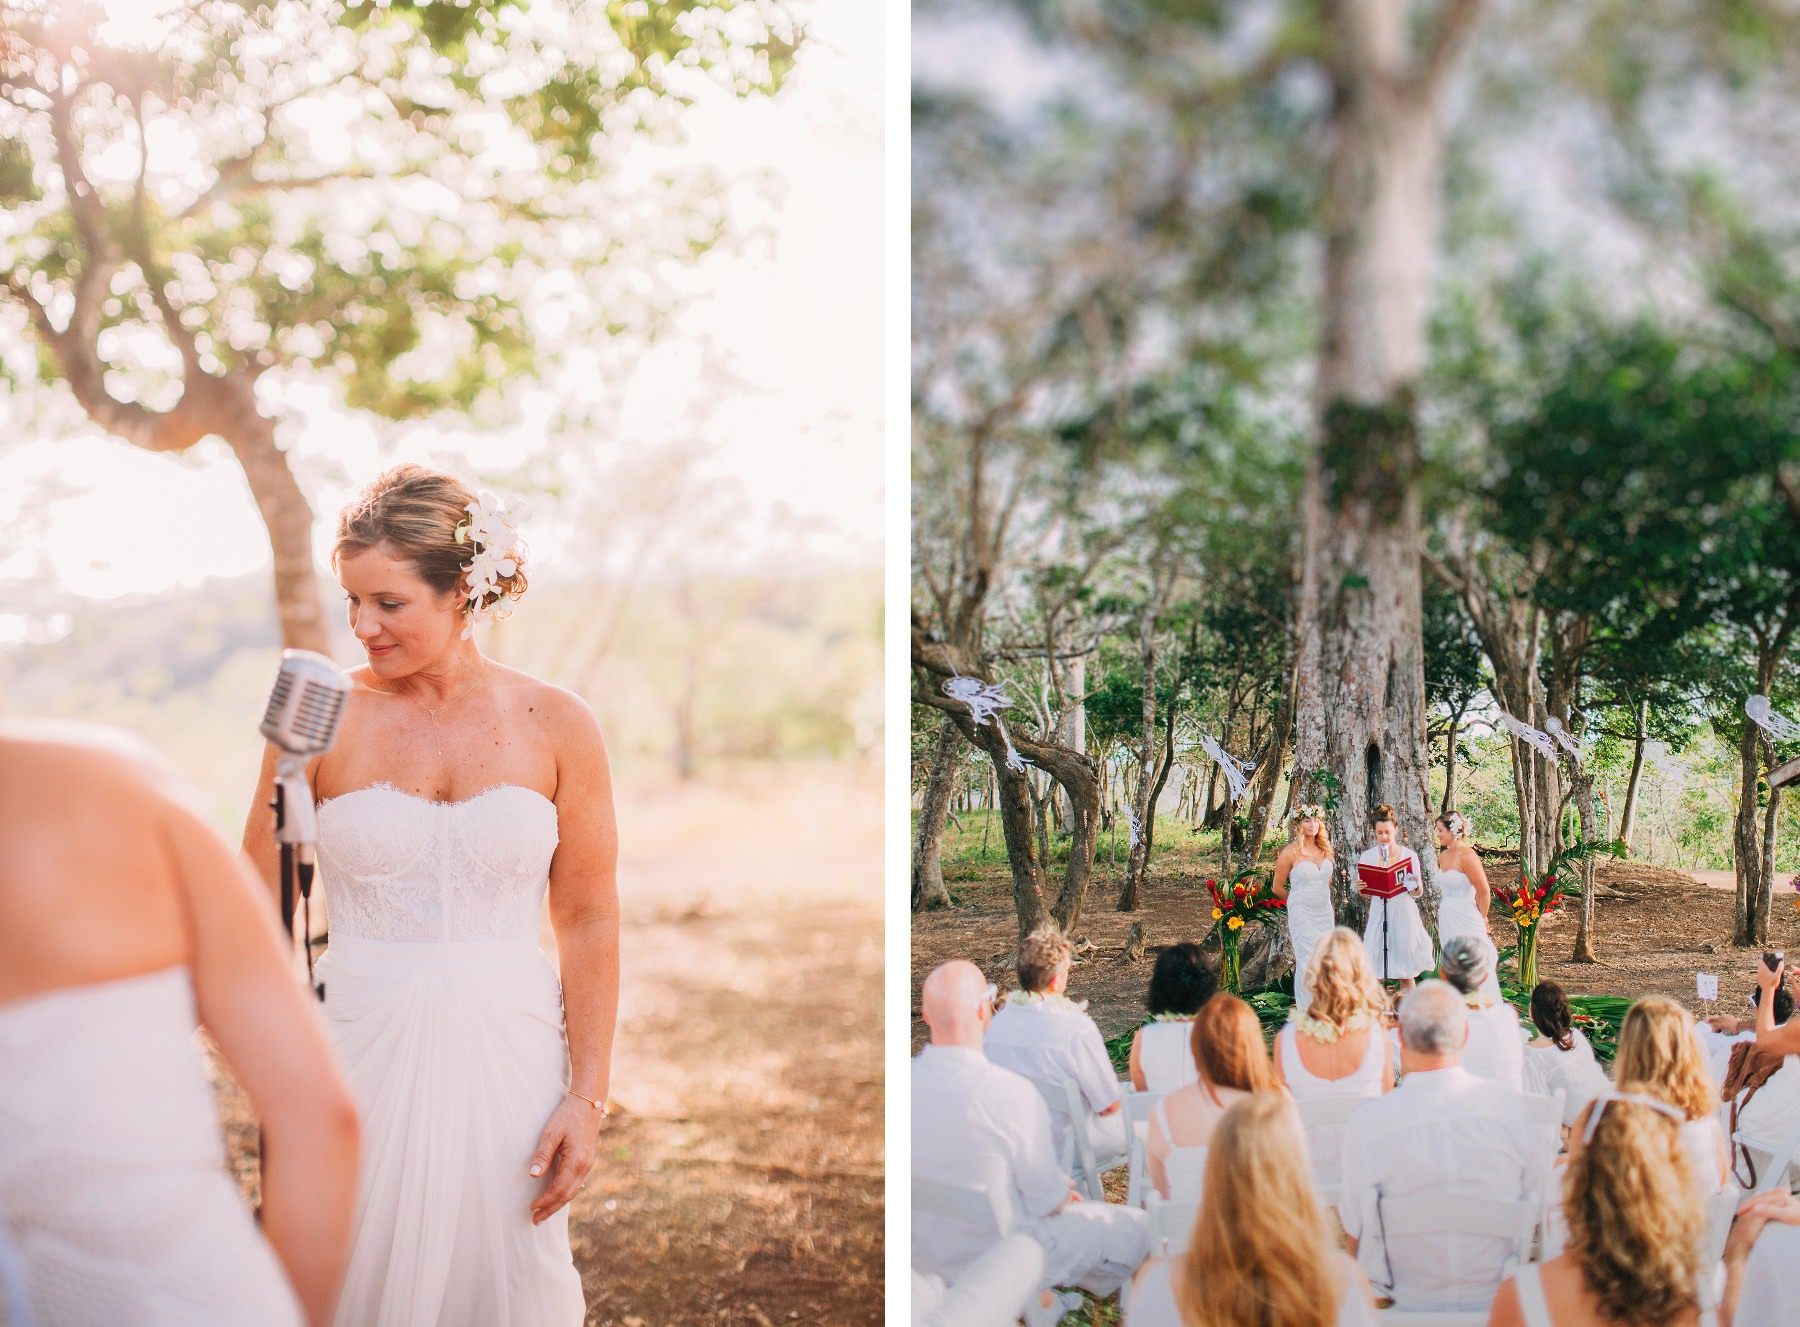 Boho Same-sex wedding under a tree in Costa Rica